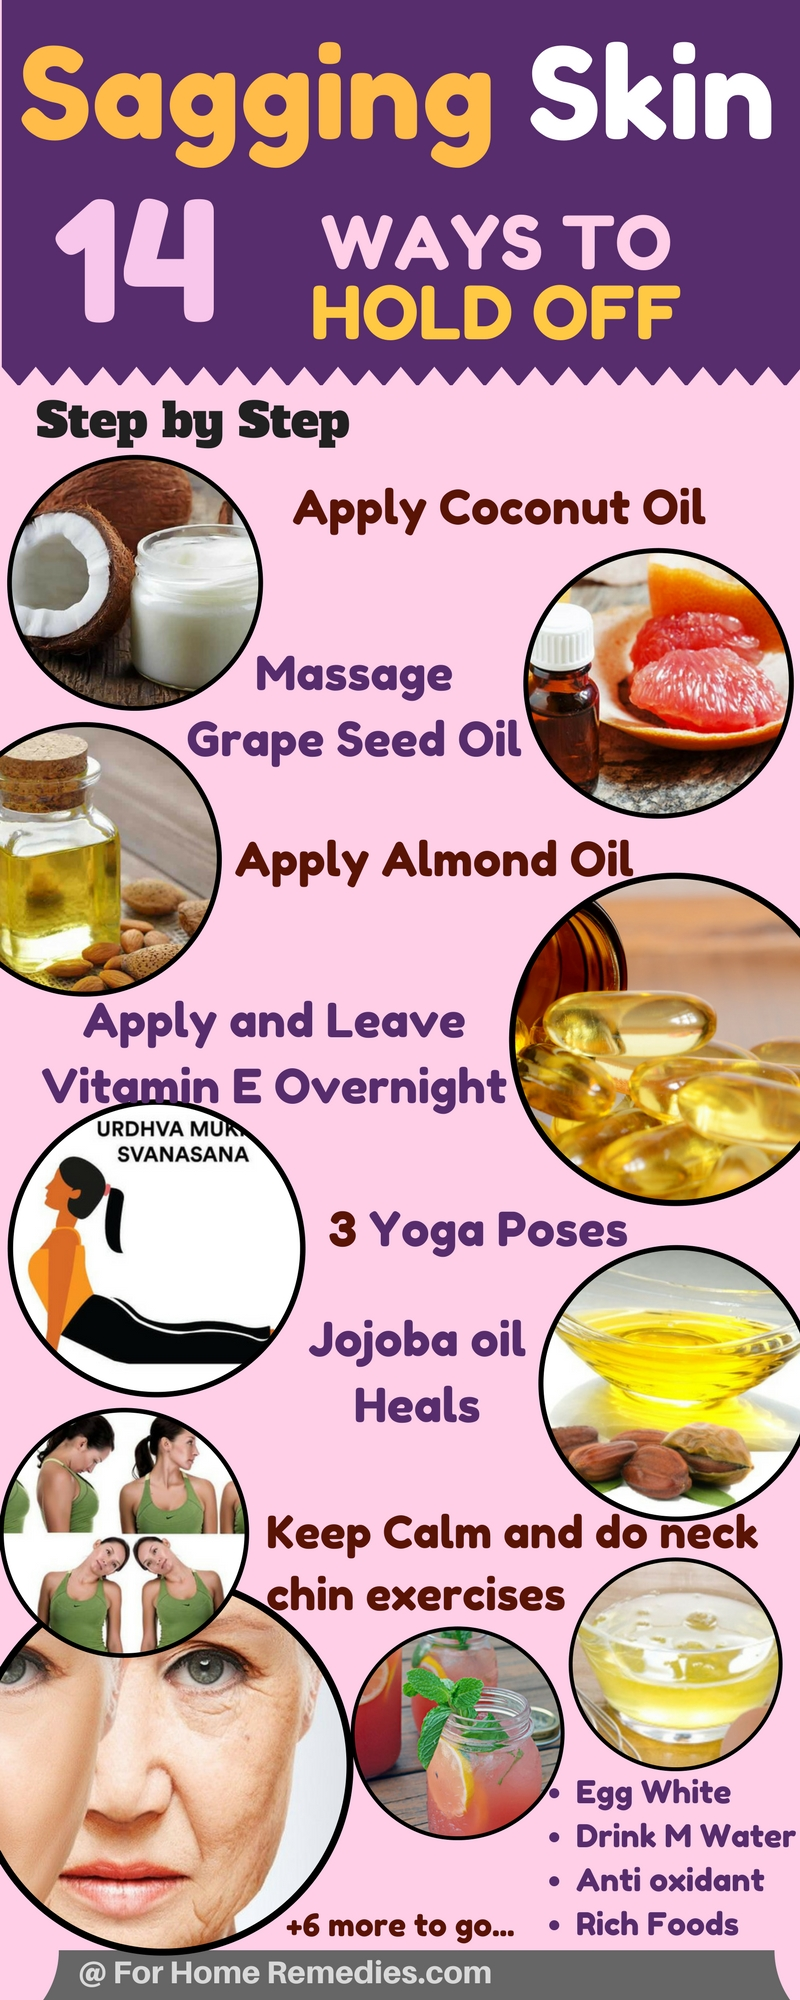 Hold Off My Aging Skin: Home Remedies 14 Ways to Delay Sagging Skin